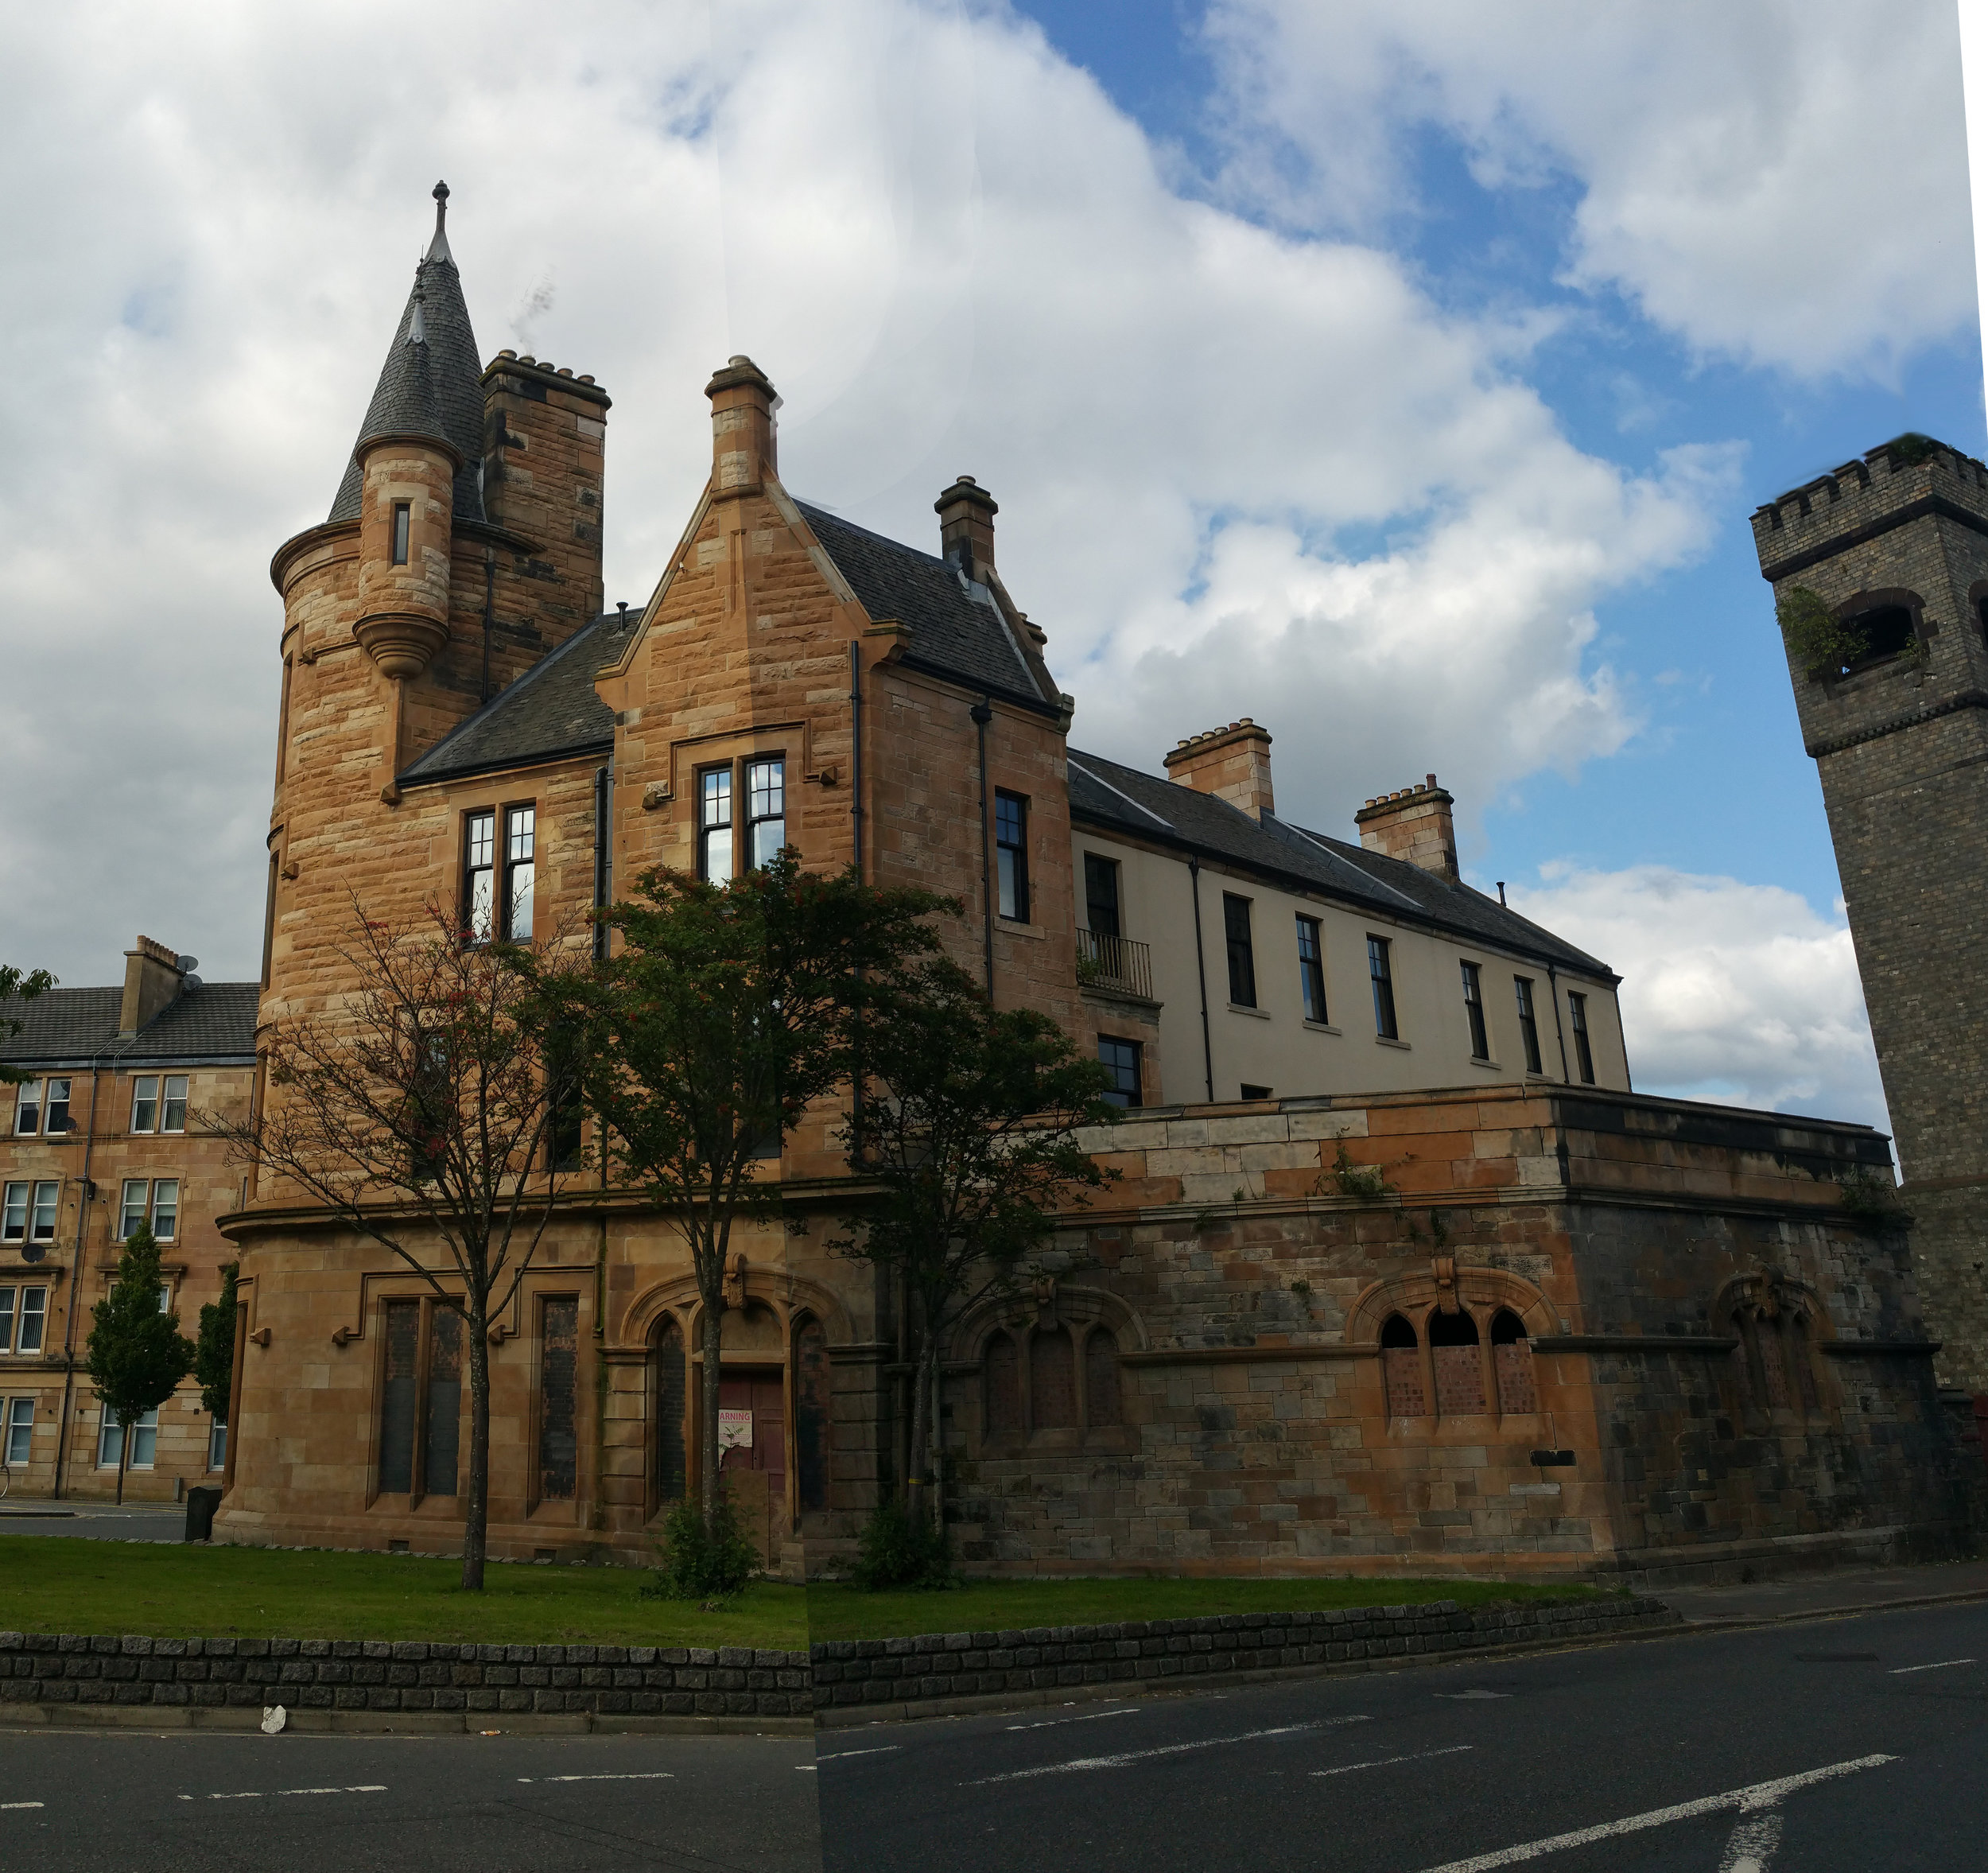 paisley-fire-station-rear-with-hoze-tower.jpg